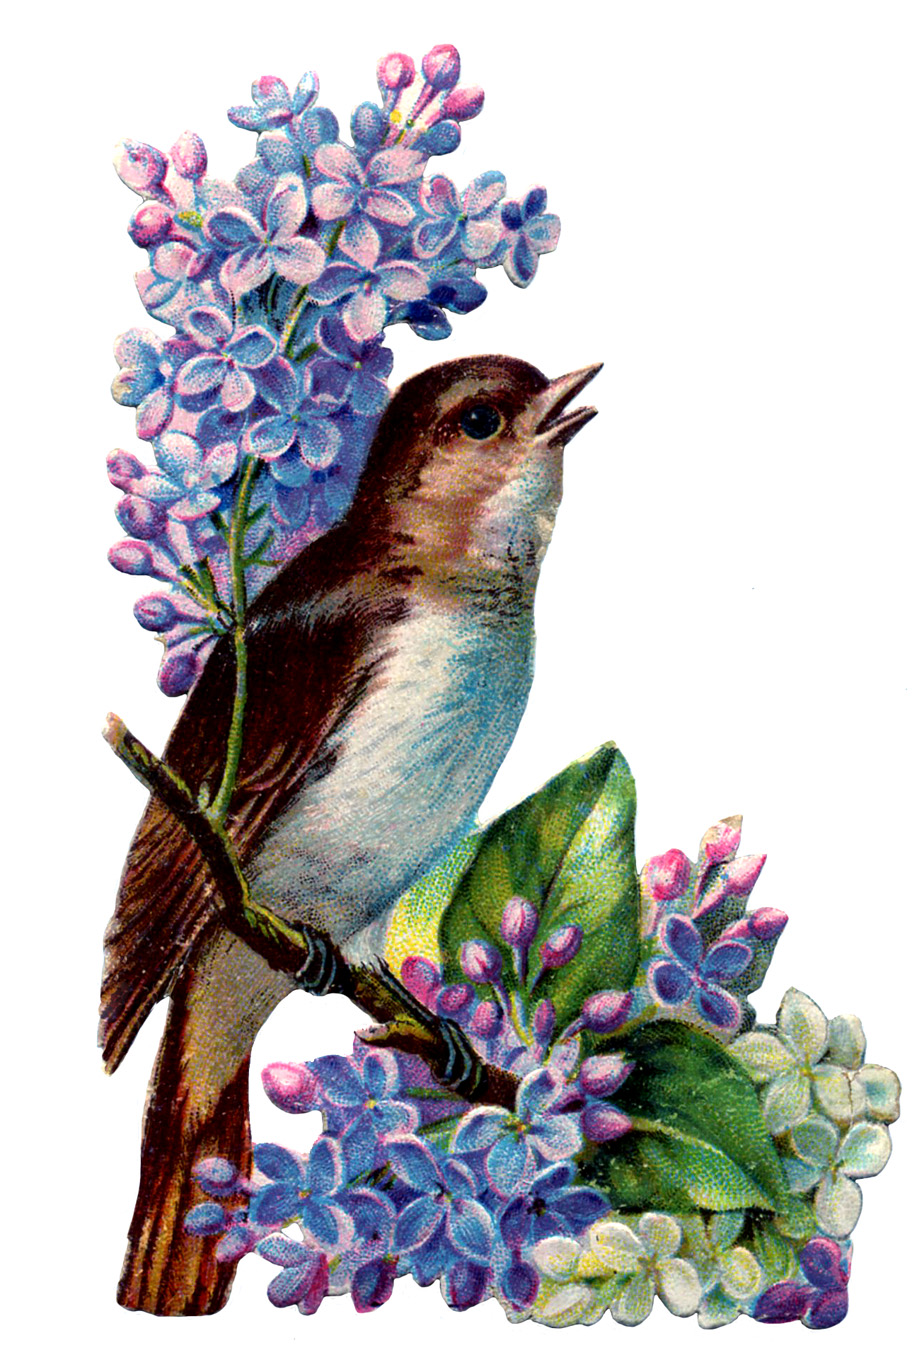 Vintage Image - Bird with Lilacs - The Graphics Fairy